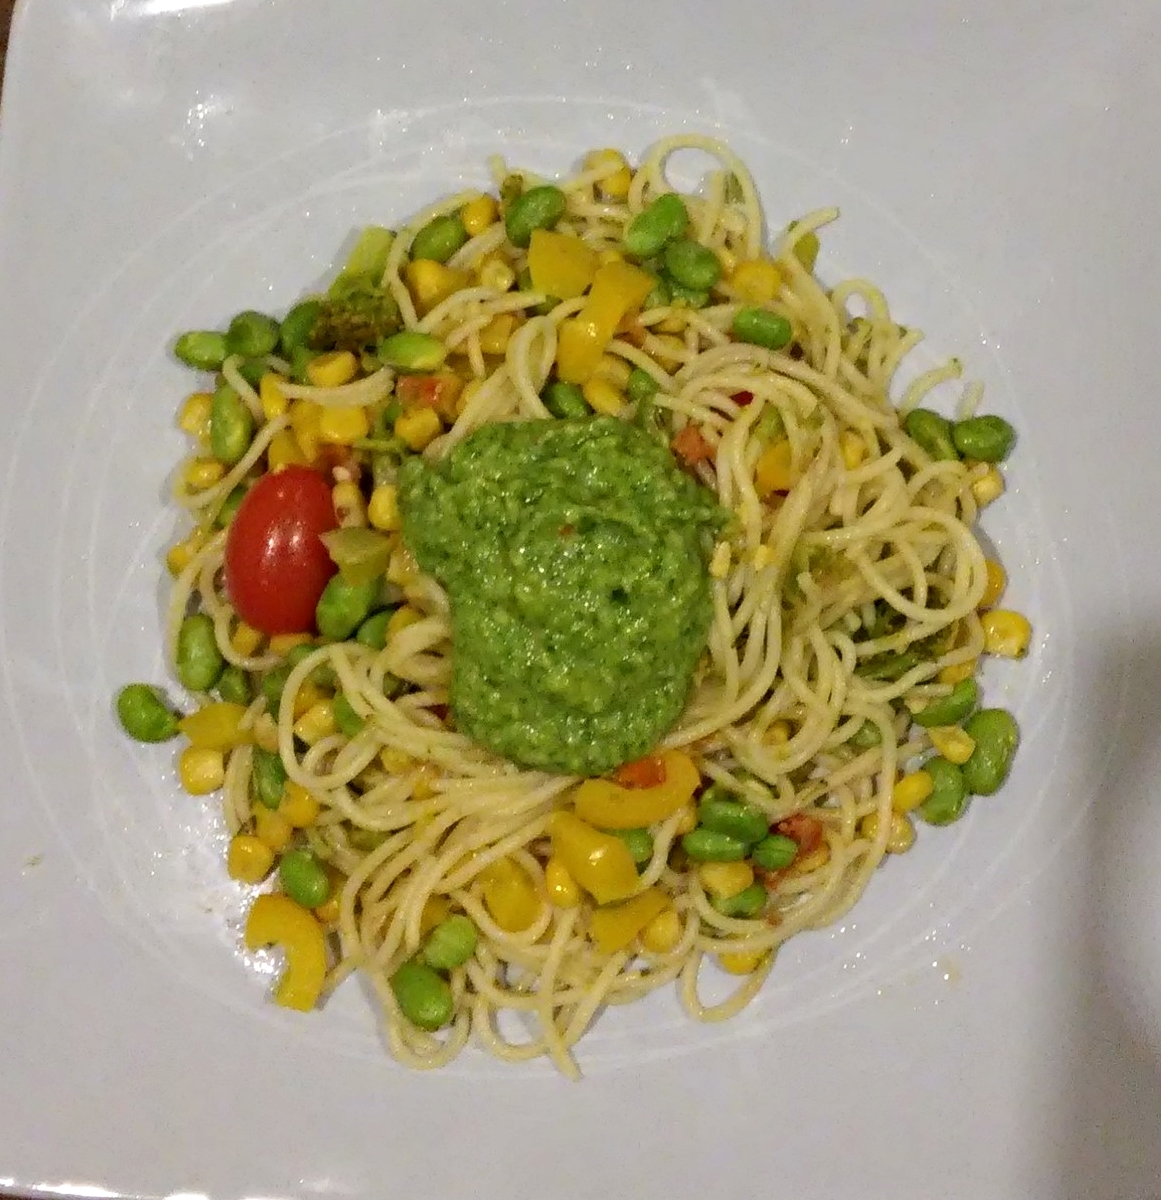 Penne swapped for spaghetti, courgette replaced with sweetcorn & basil sauce not mixed in